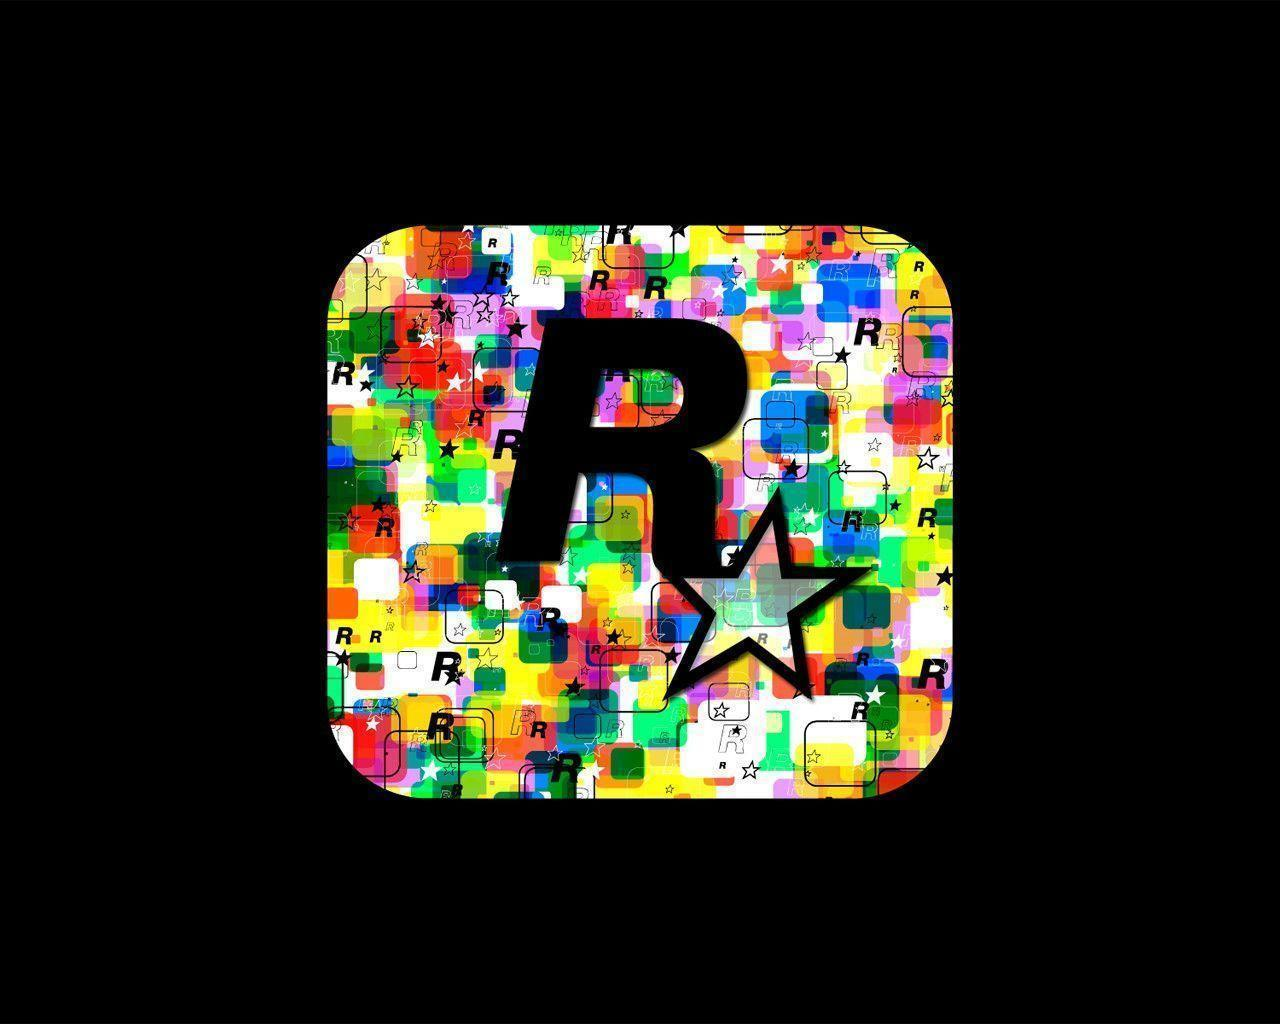 Download: Rockstar HD wallpapers collection